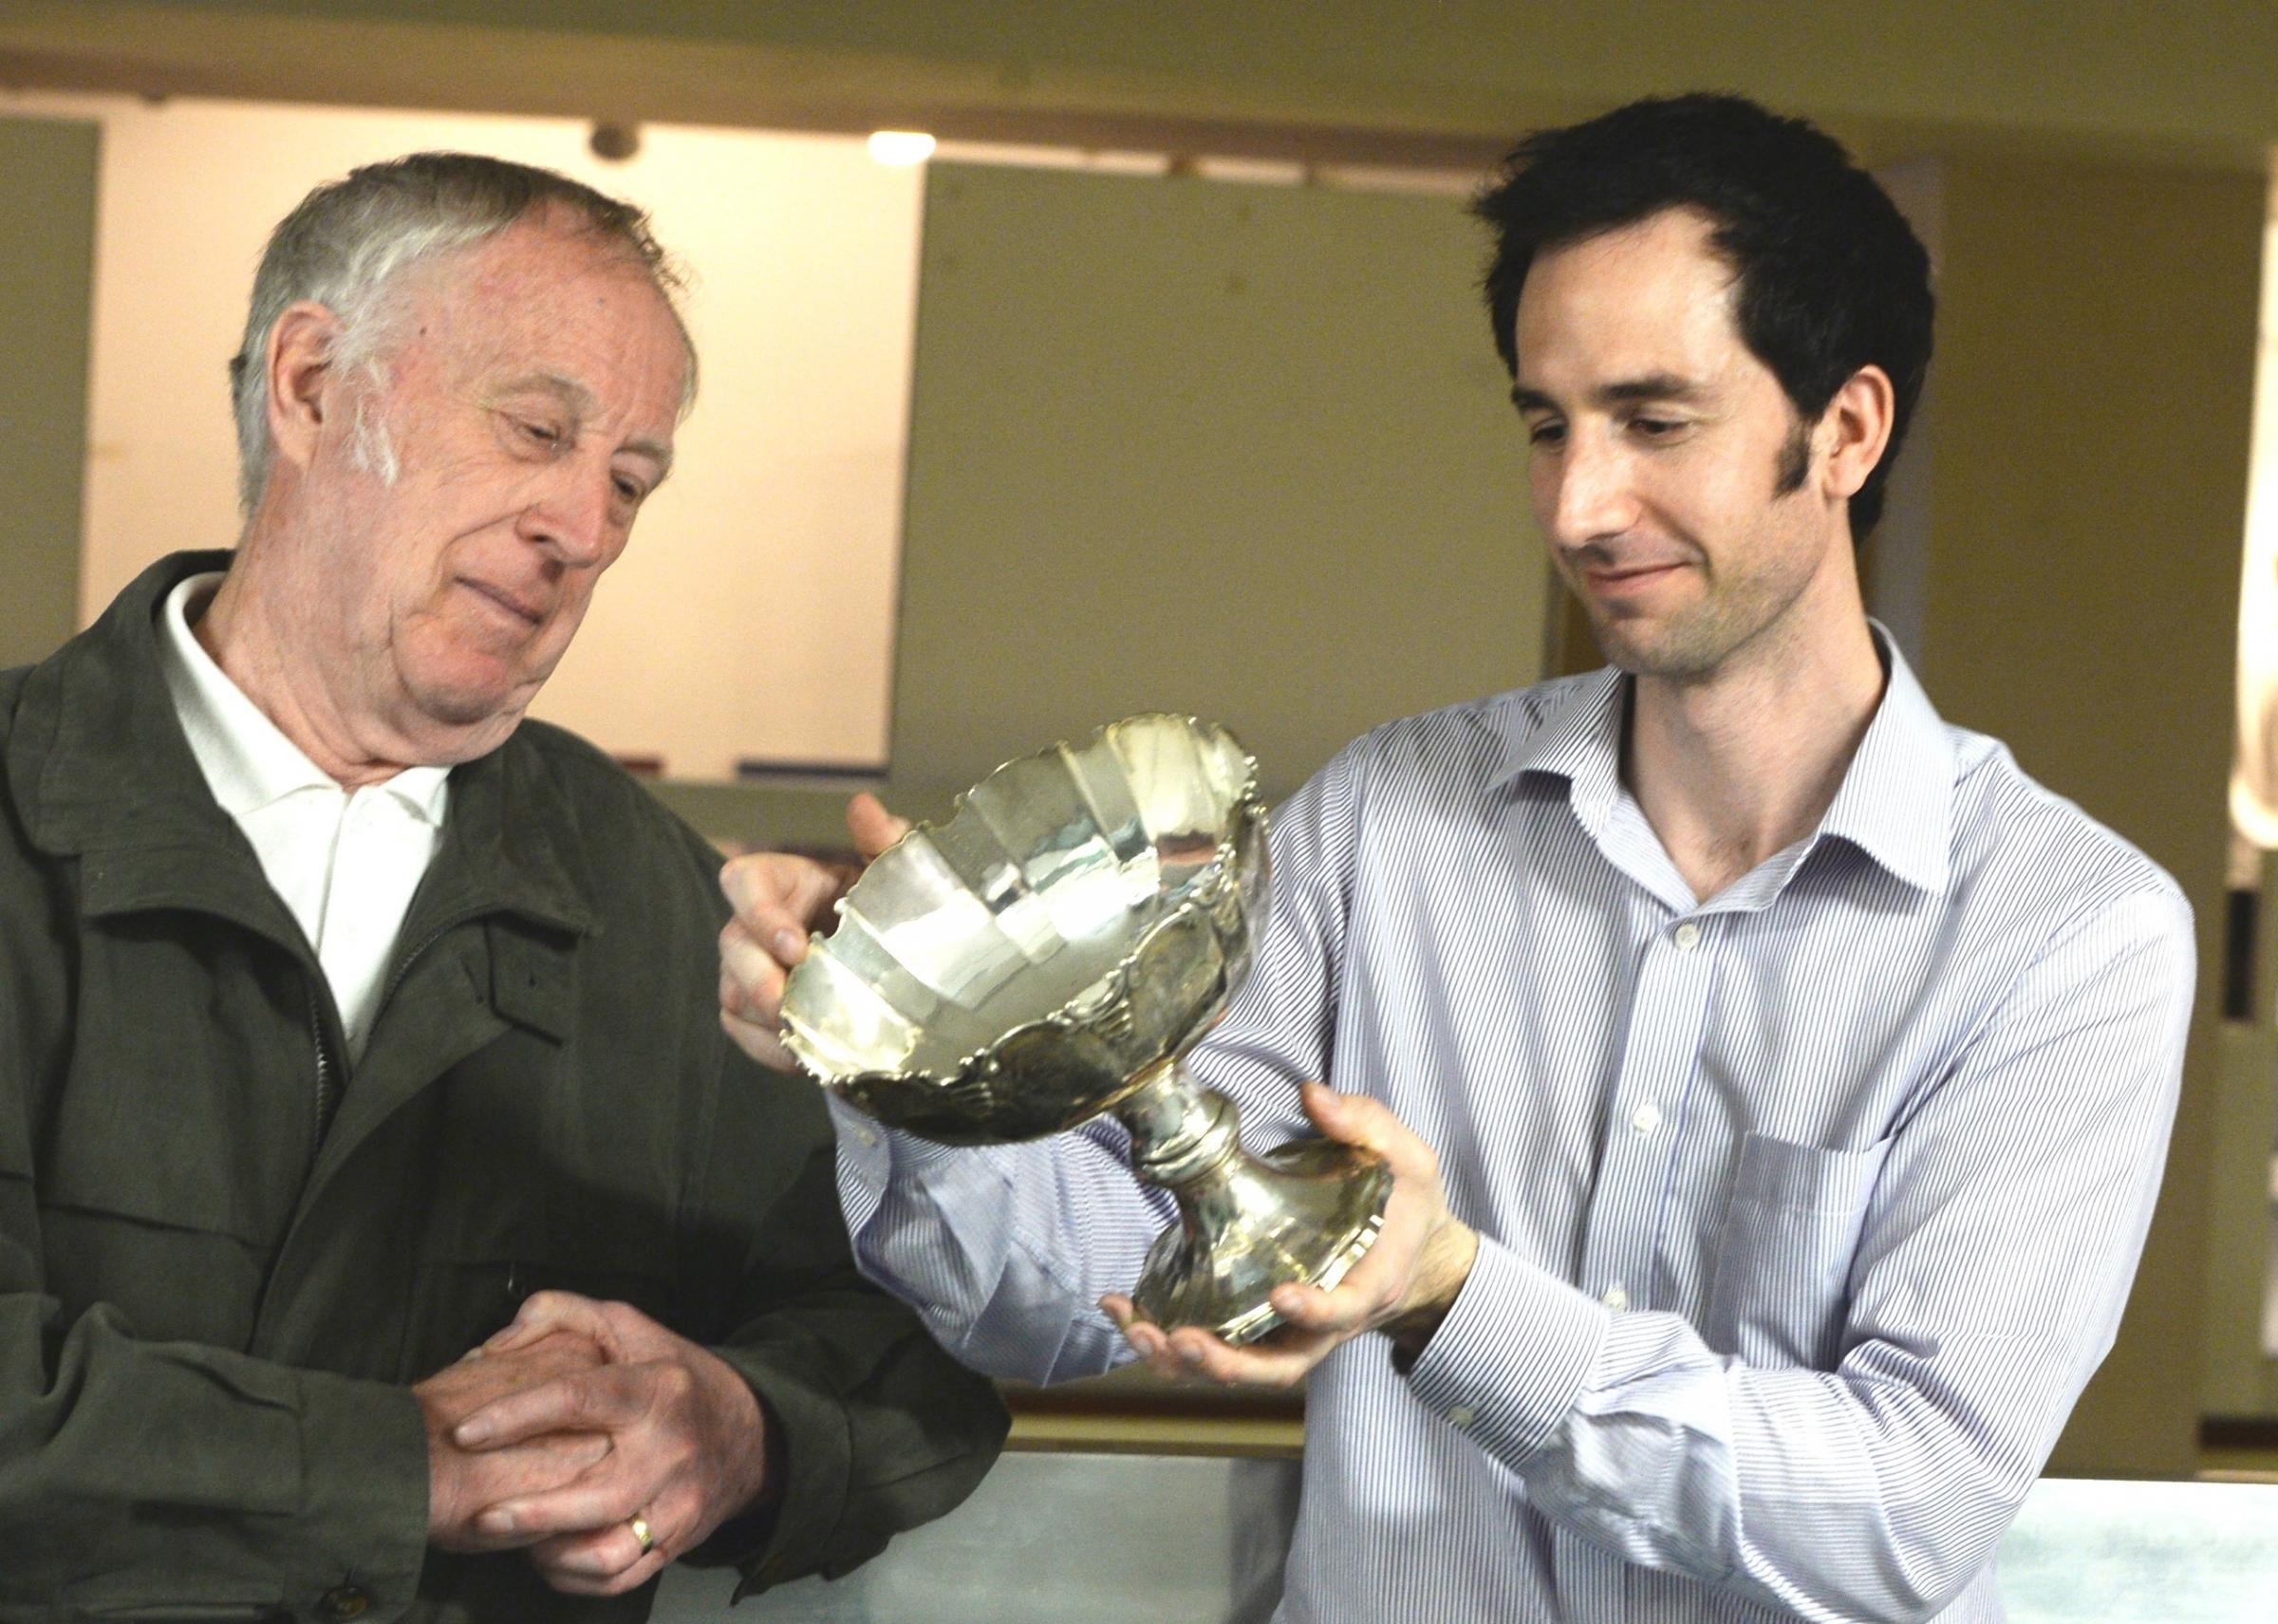 Derek Everett, (lt), who brought in a presentation cup gets Newport Museum curator Oliver Blackmoore to cast his eye over as part of historical objects being looked over to see if they could be taken by the museum (5285830